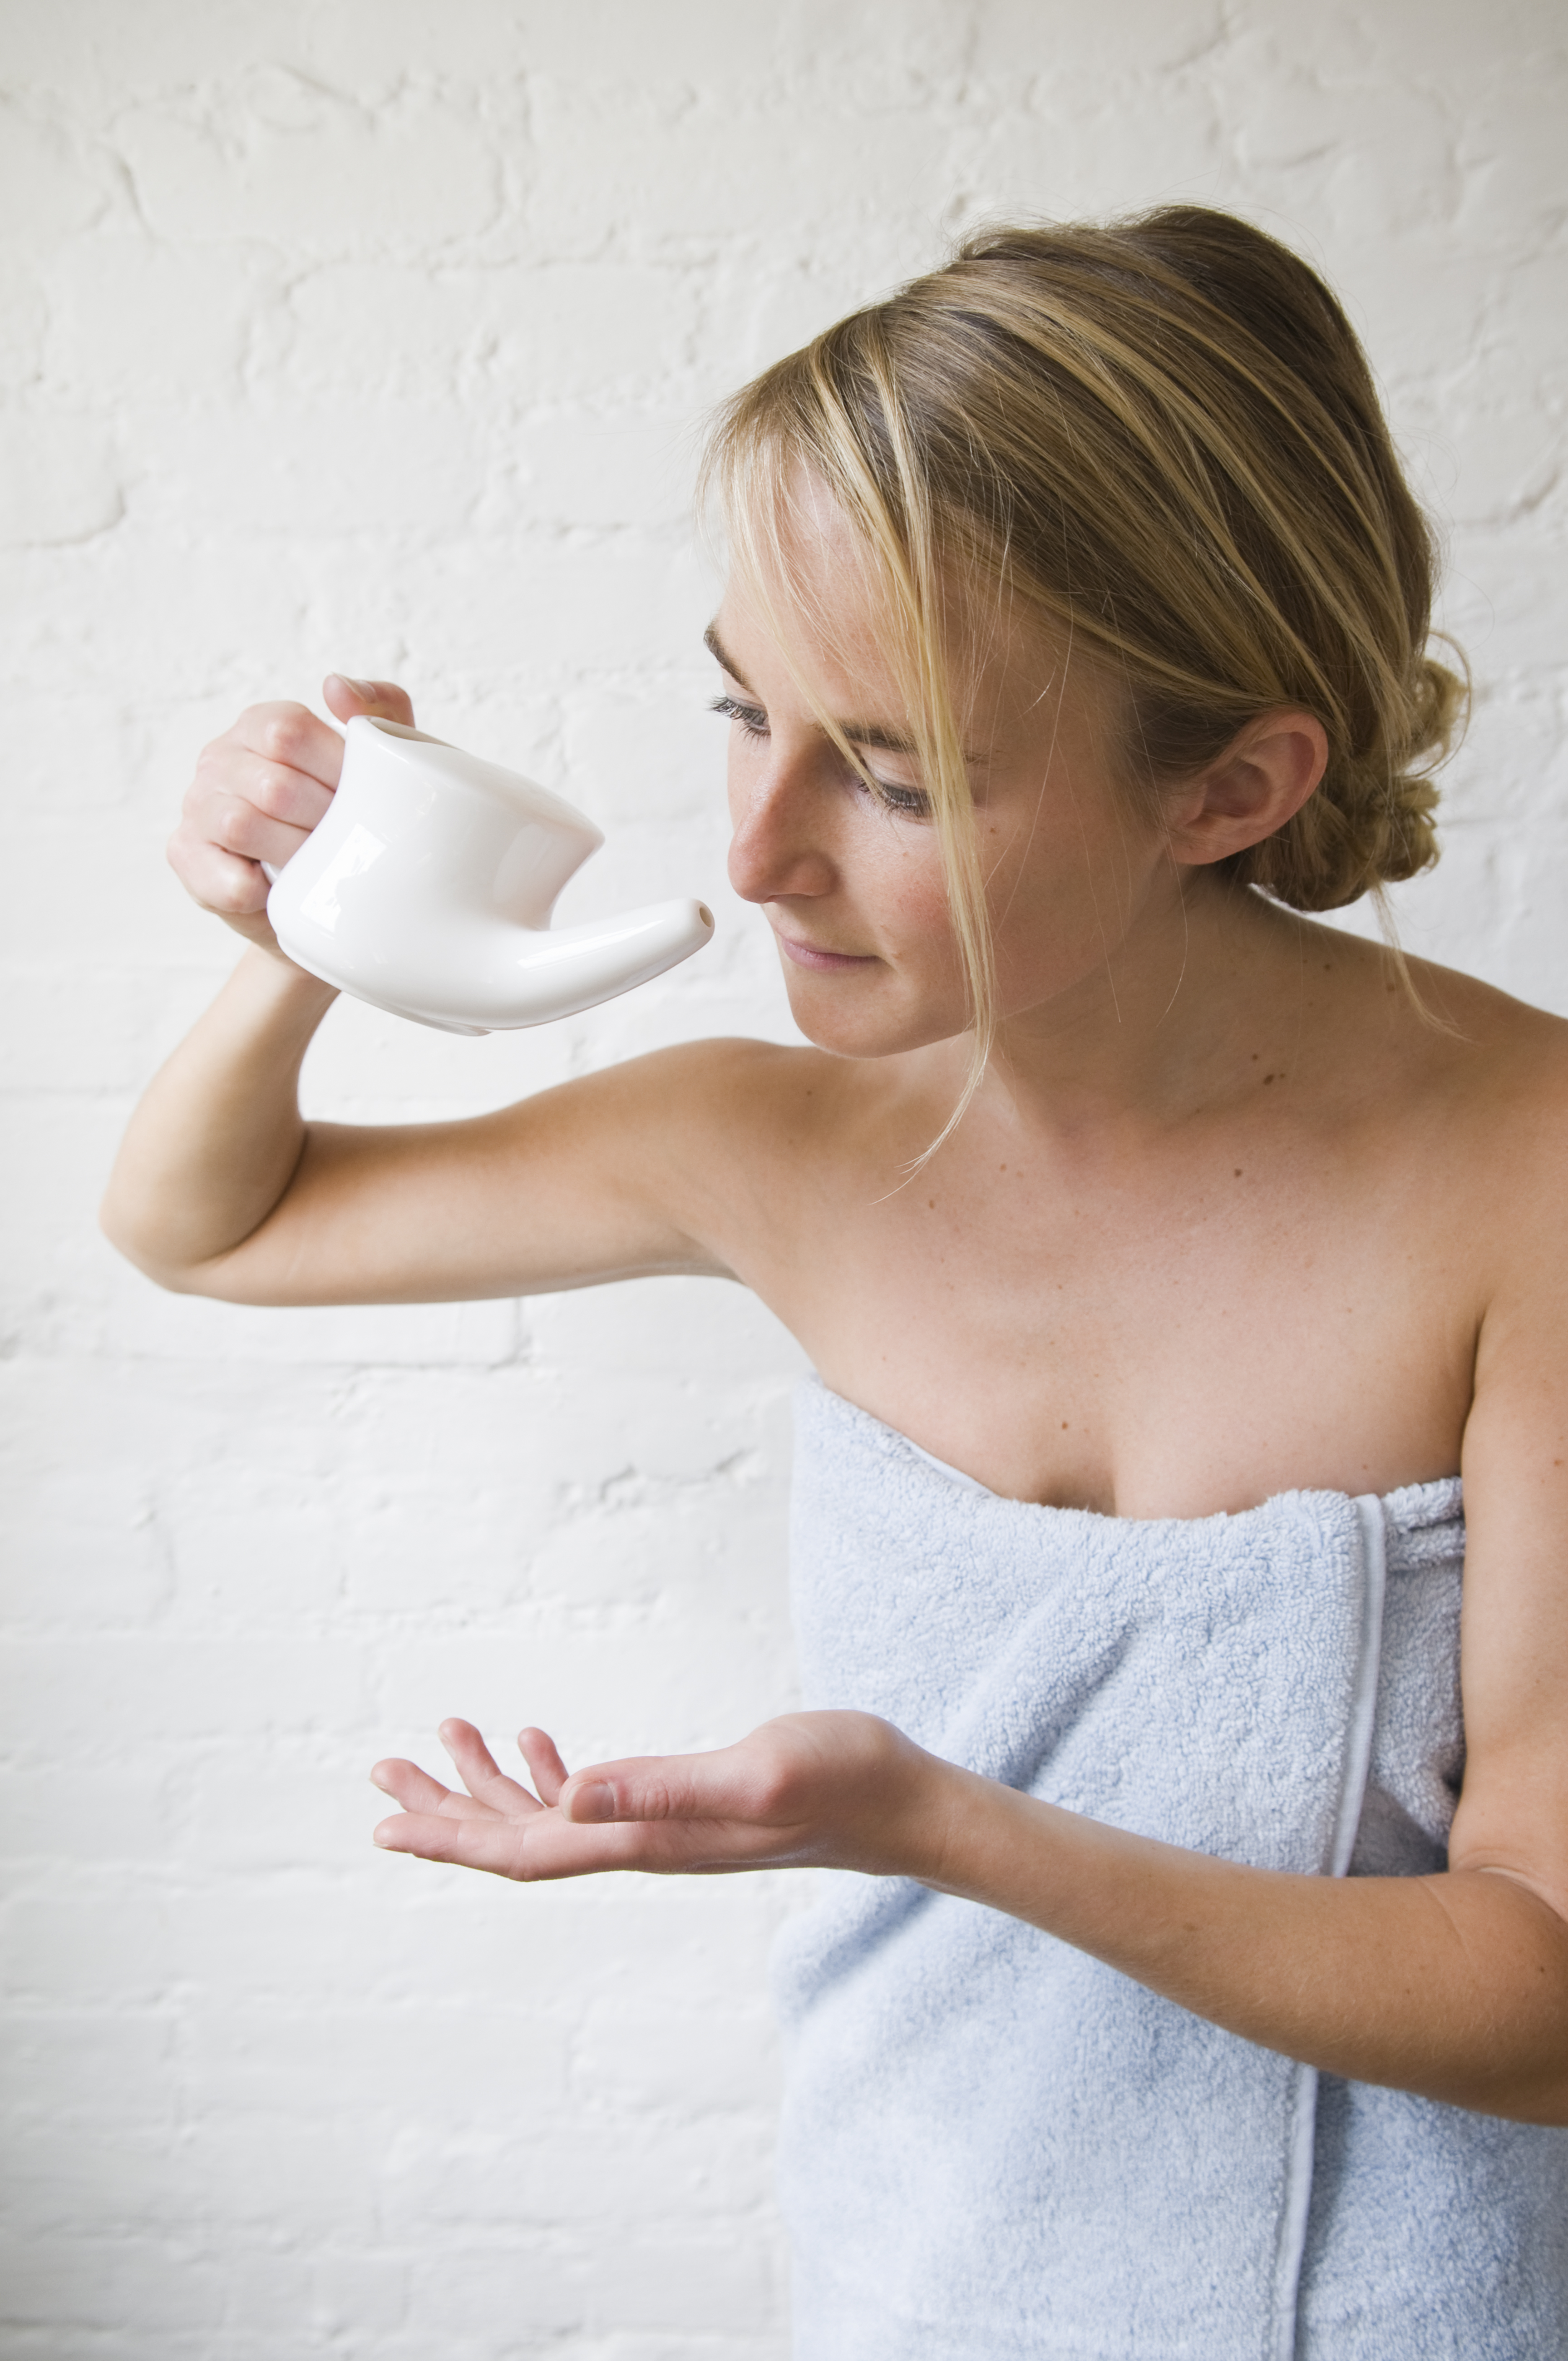 Woman Contracted Rare and Fatal Brain-Eating Amoeba After Using Neti Pot with Tap Water